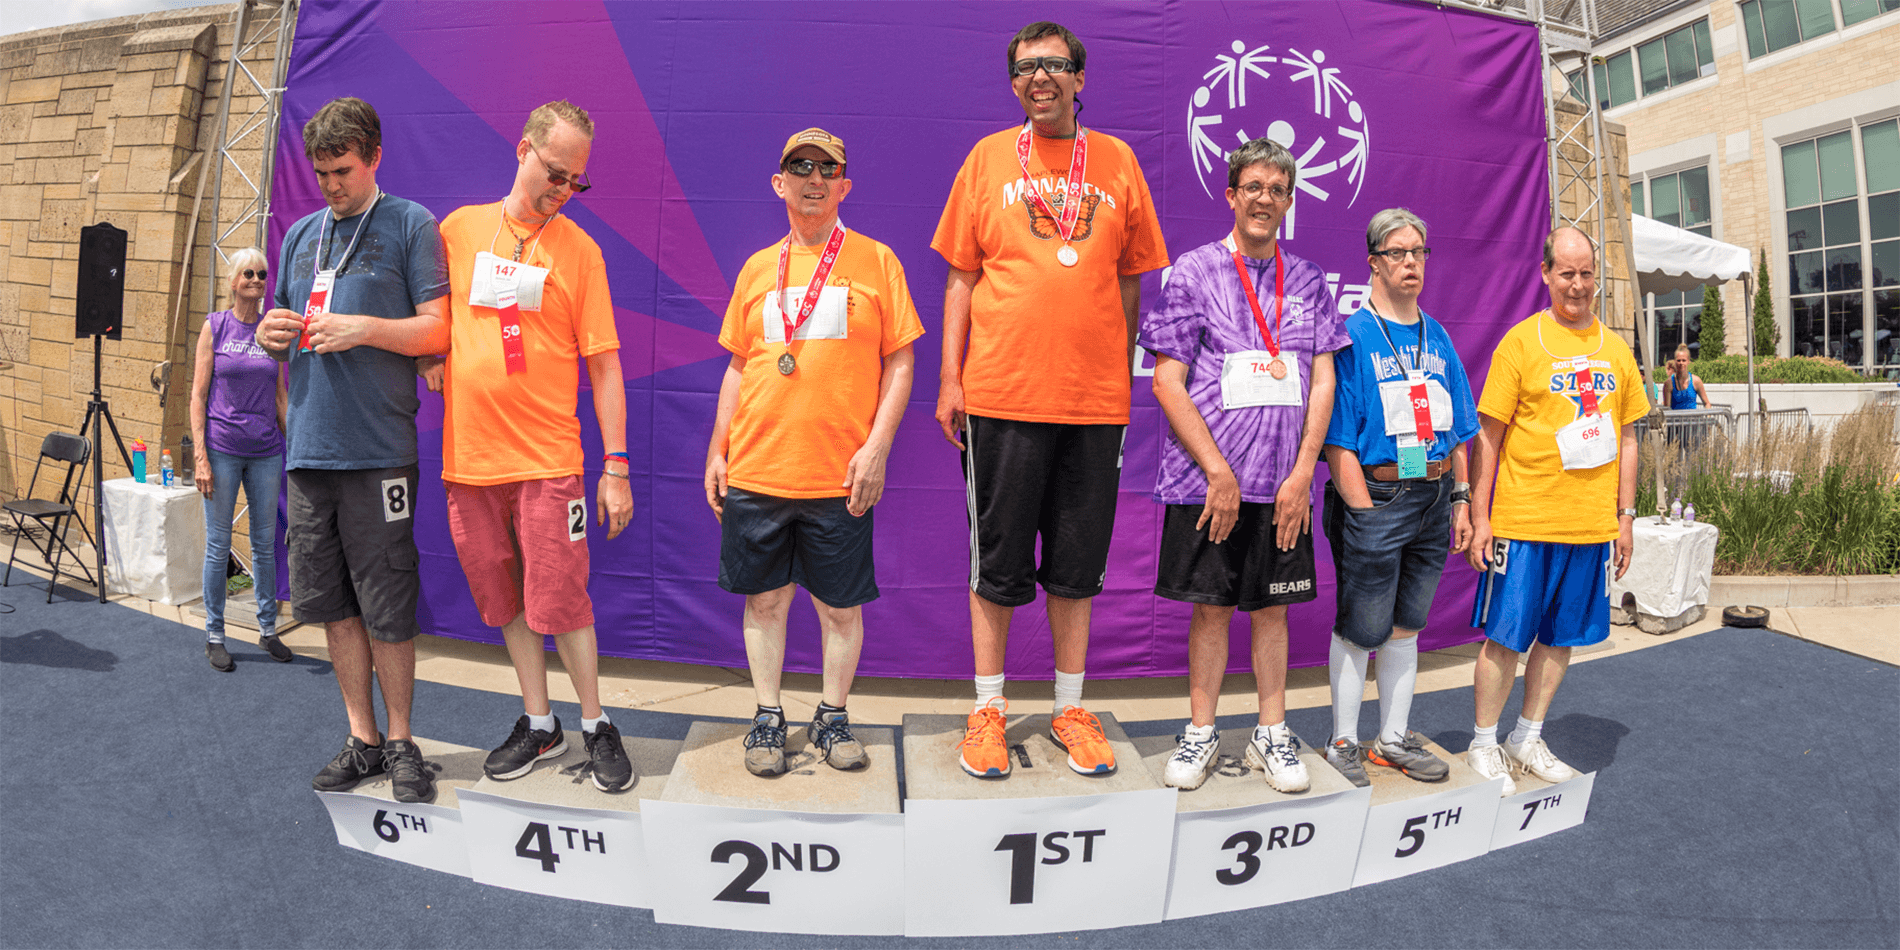 Special Olympics Minnesota athletes standing on podiums smile and show off their medals